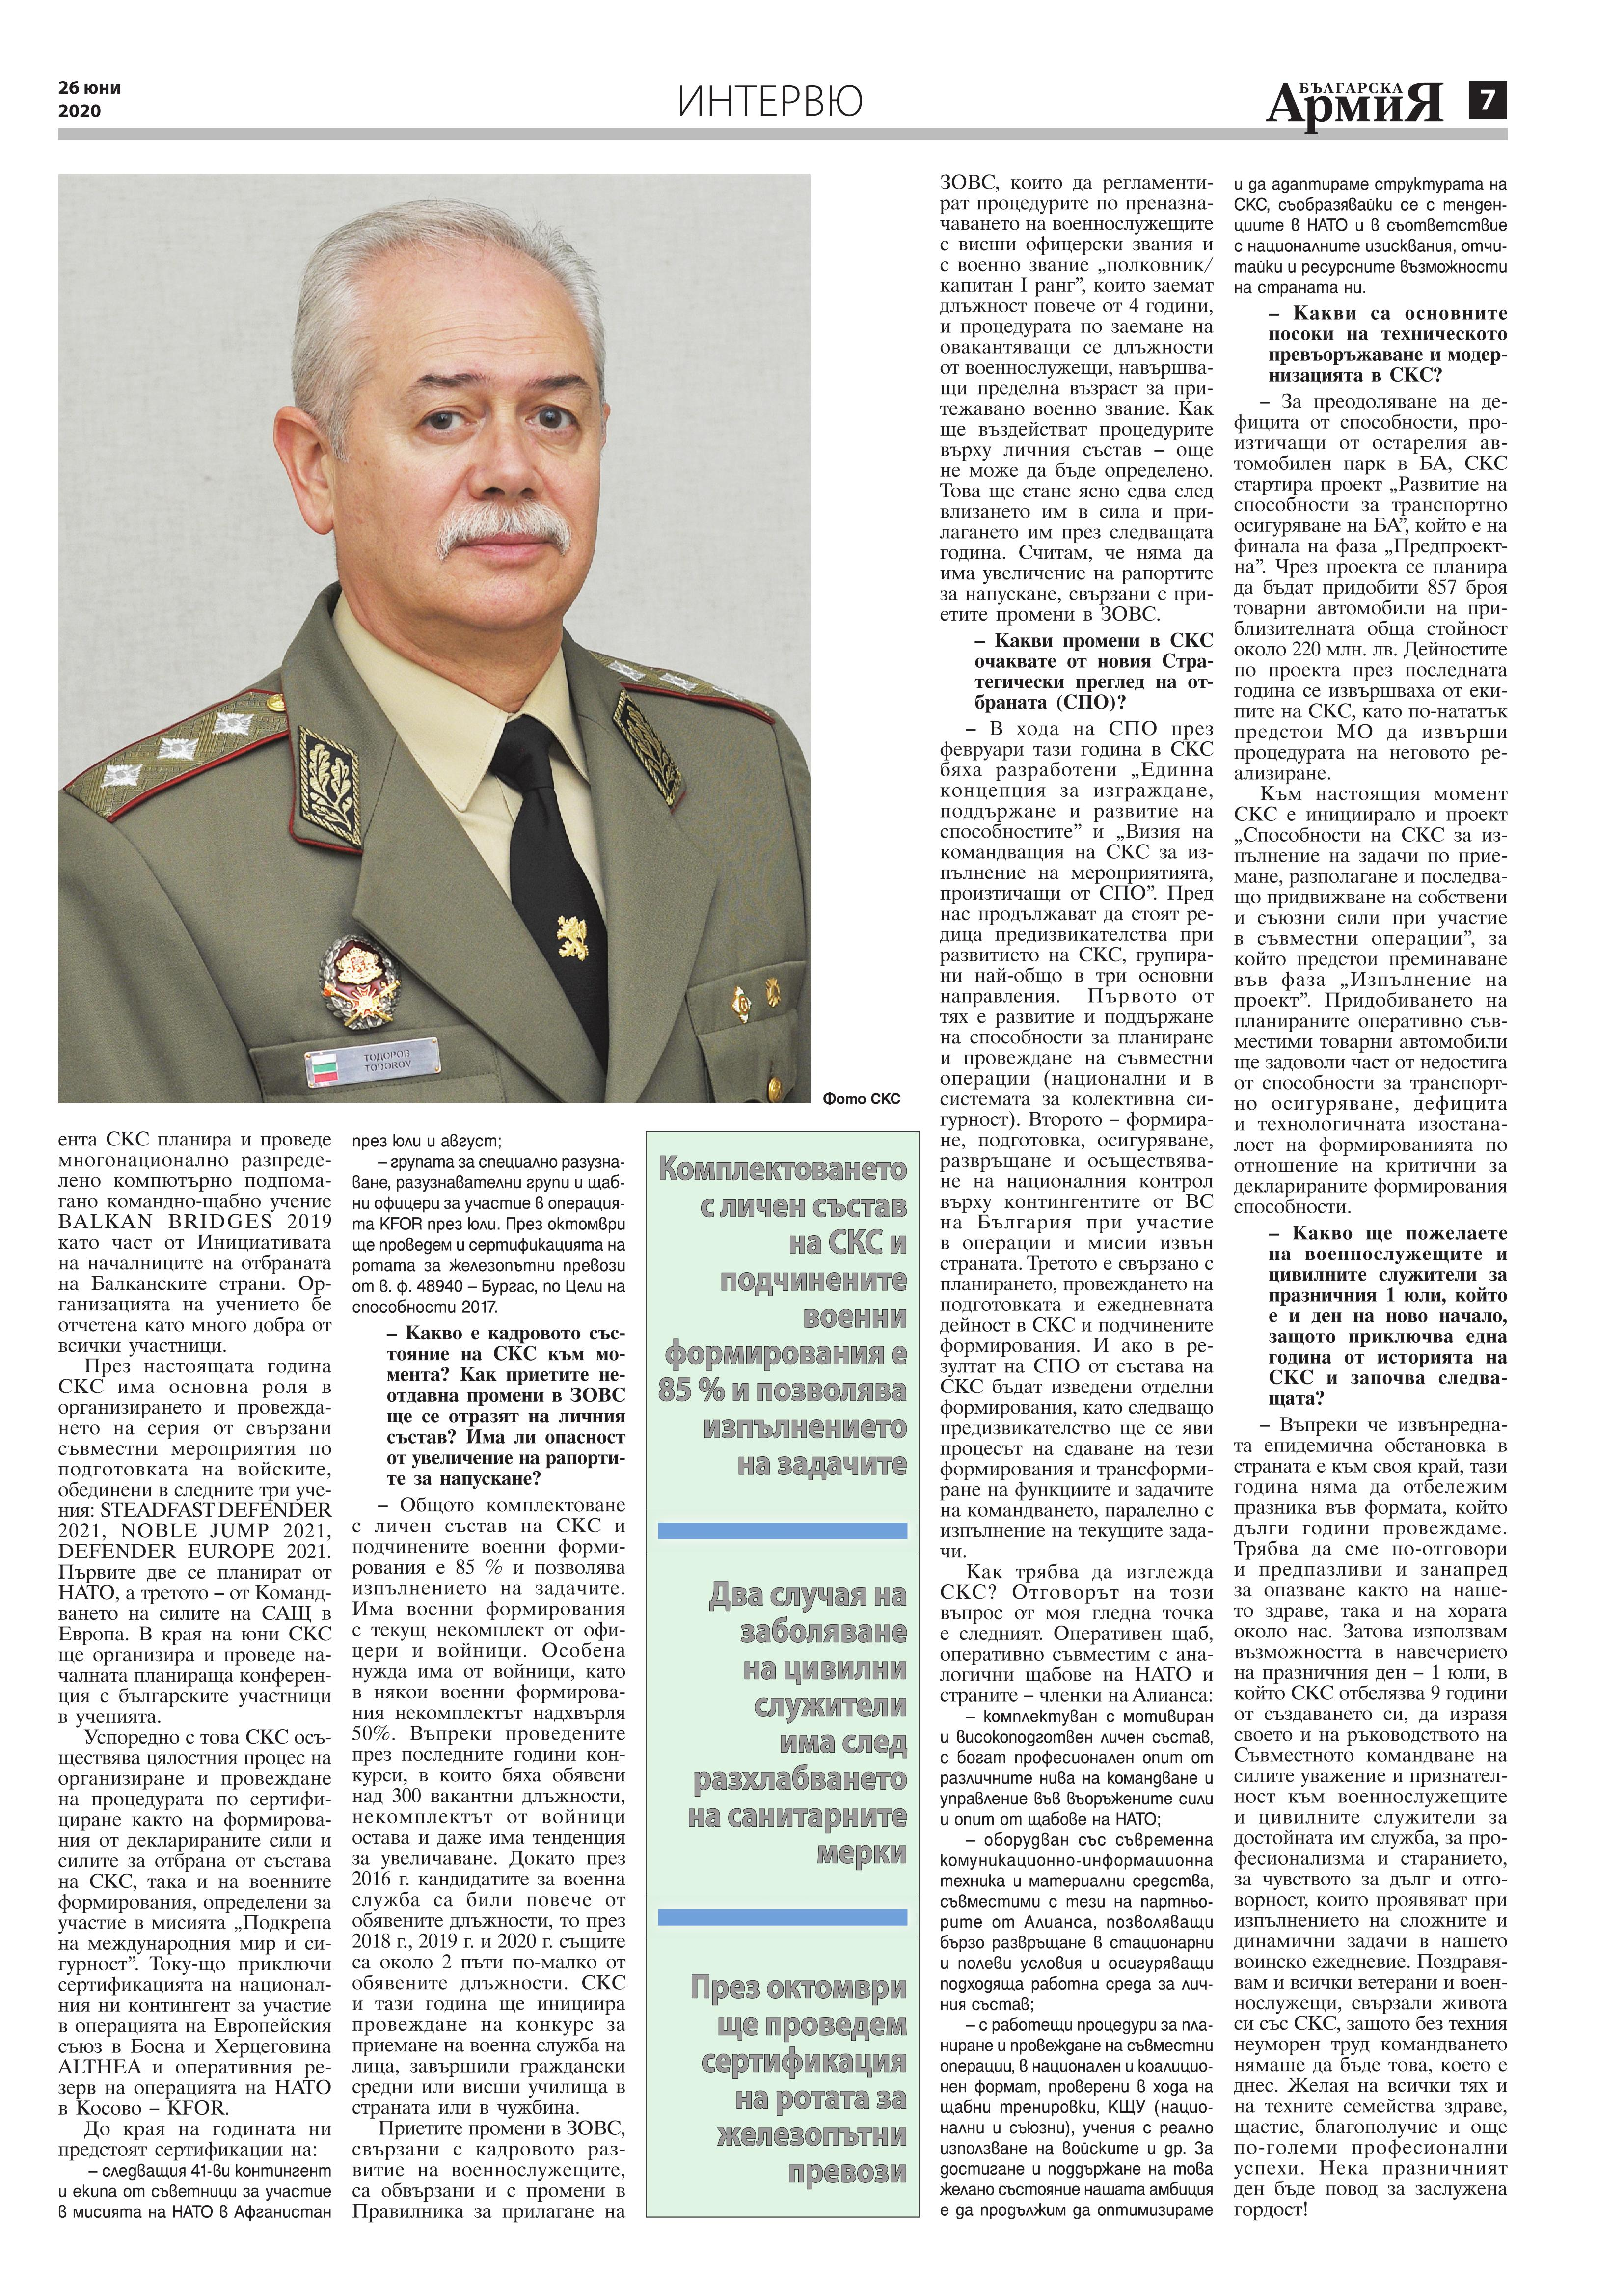 https://www.armymedia.bg/wp-content/uploads/2015/06/07.page1_-142.jpg